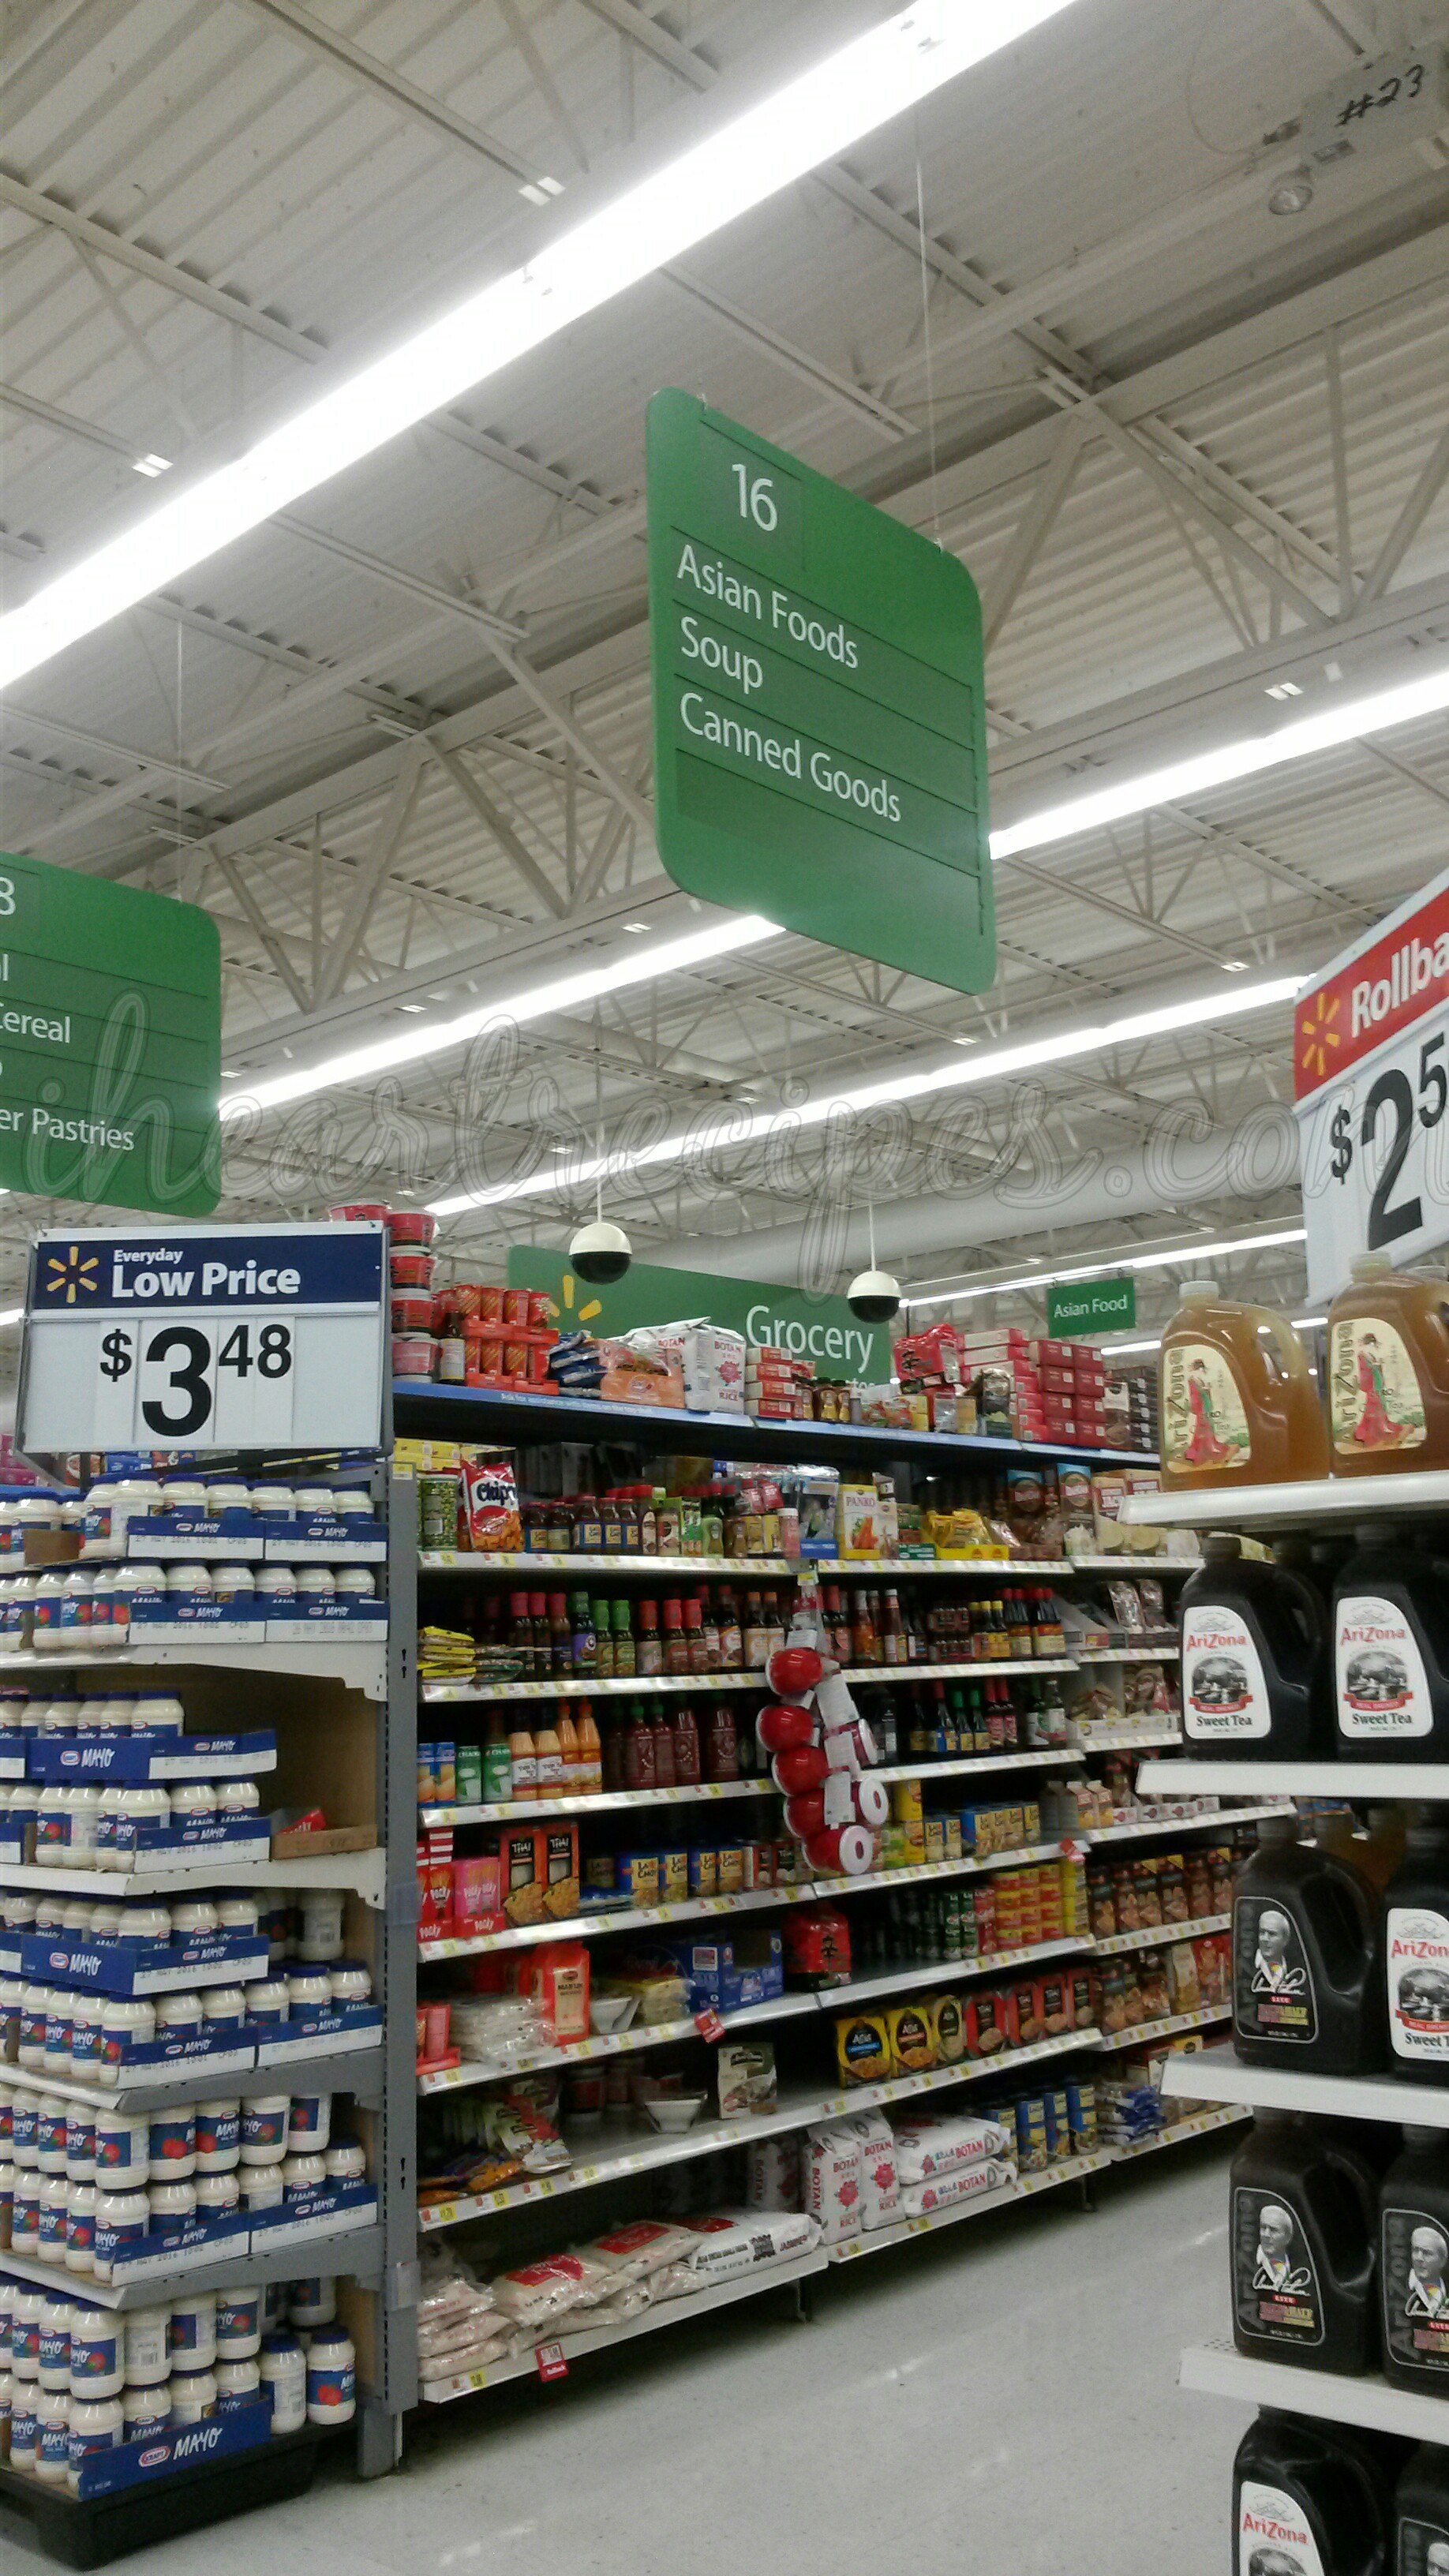 Find the chicken soup in this aisle